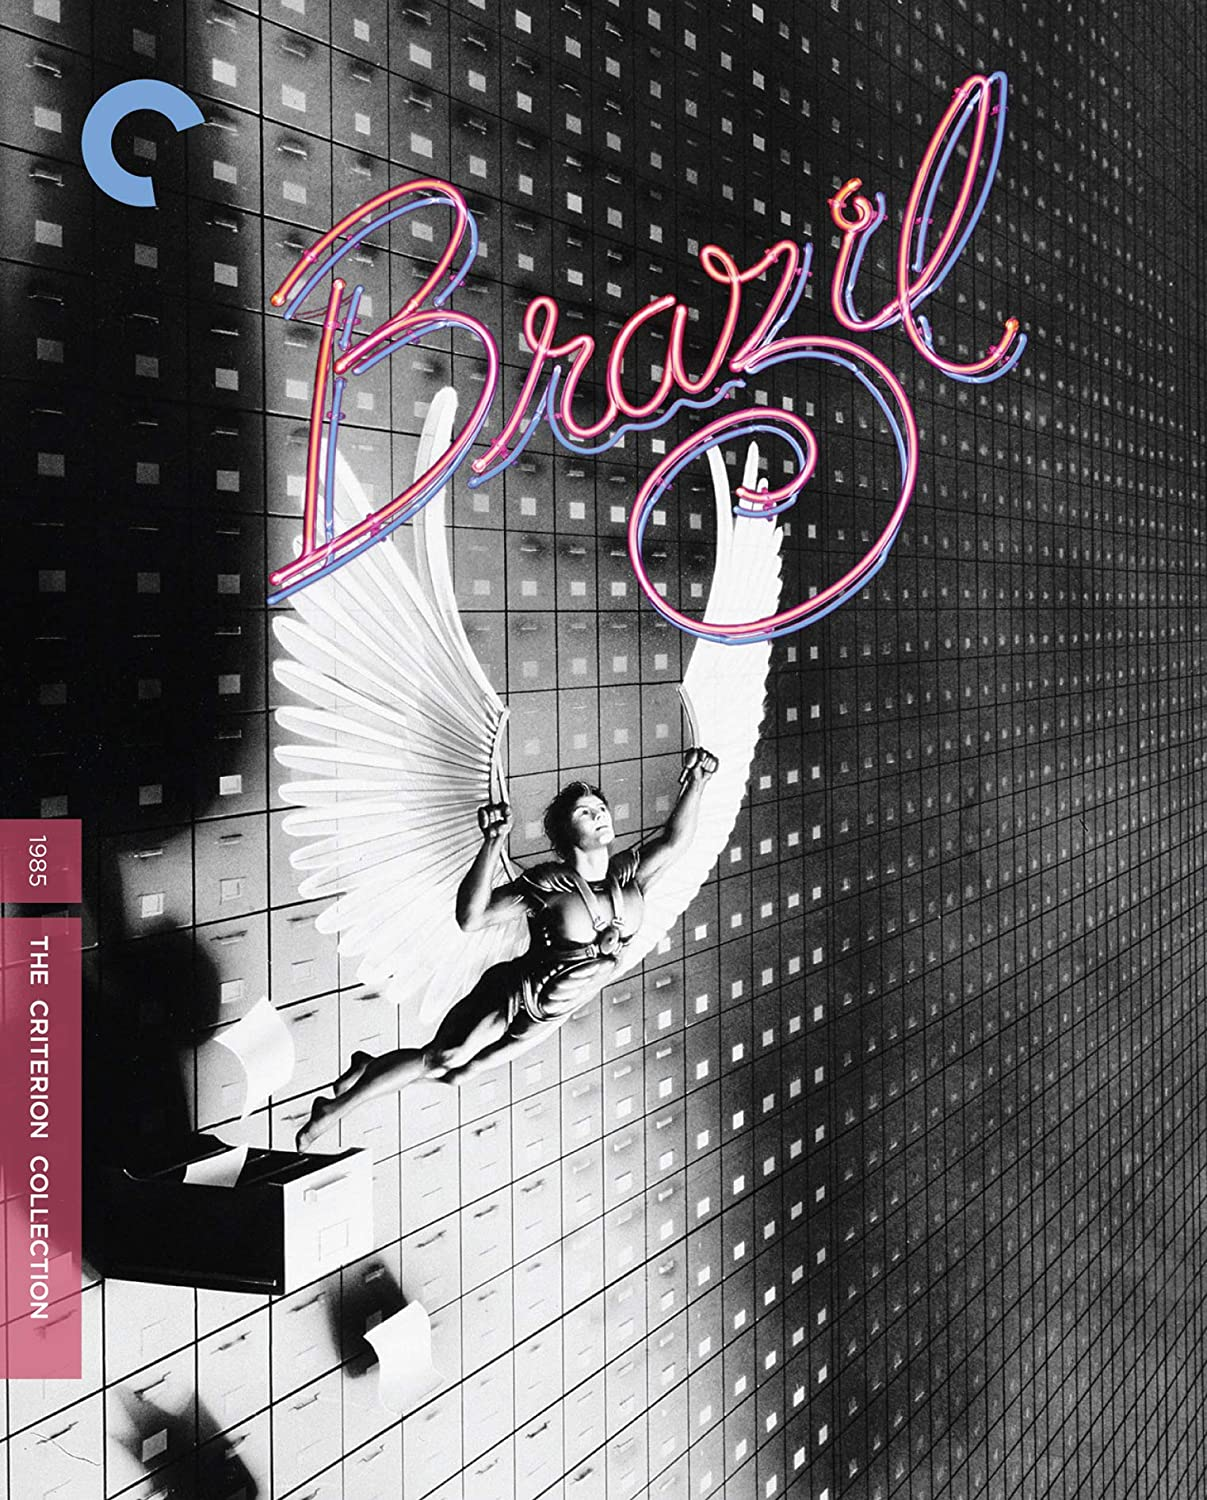 Brazil Max 70% OFF Criterion Courier shipping free shipping Blu-ray Collection